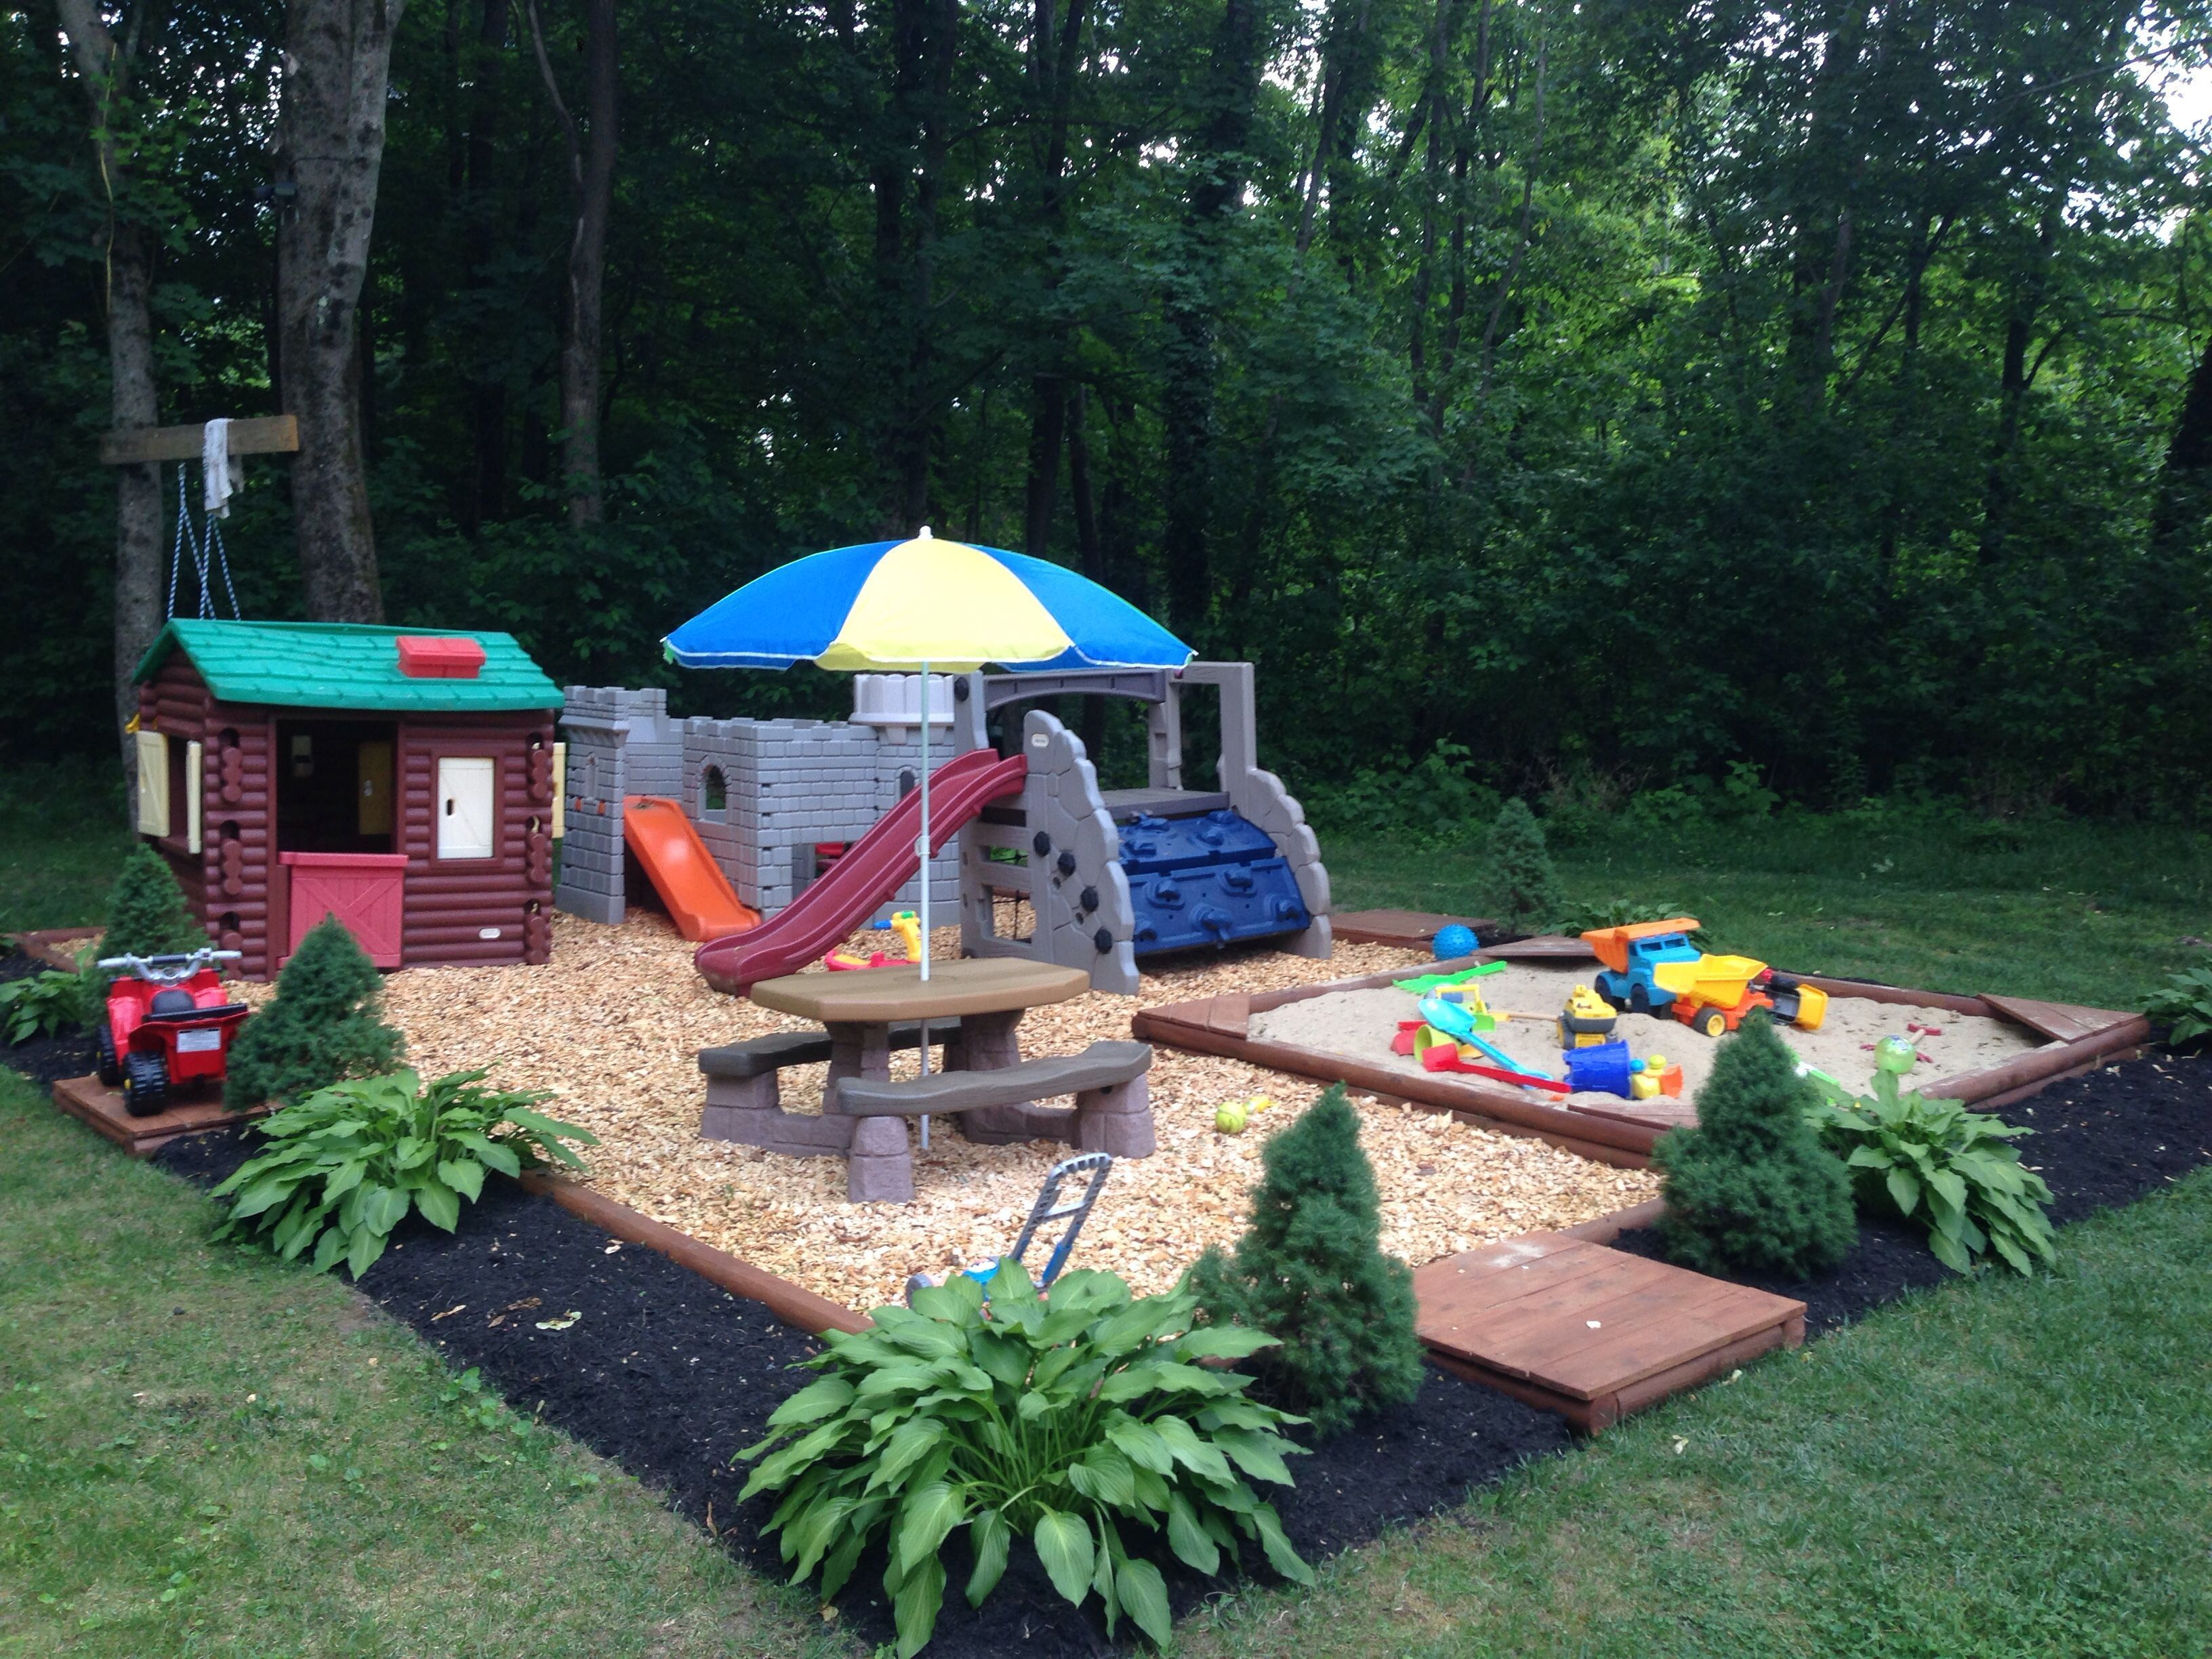 THESE 12 CREATIVE OUTDOOR PLAY SPACES WILL MAKE YOU WANT